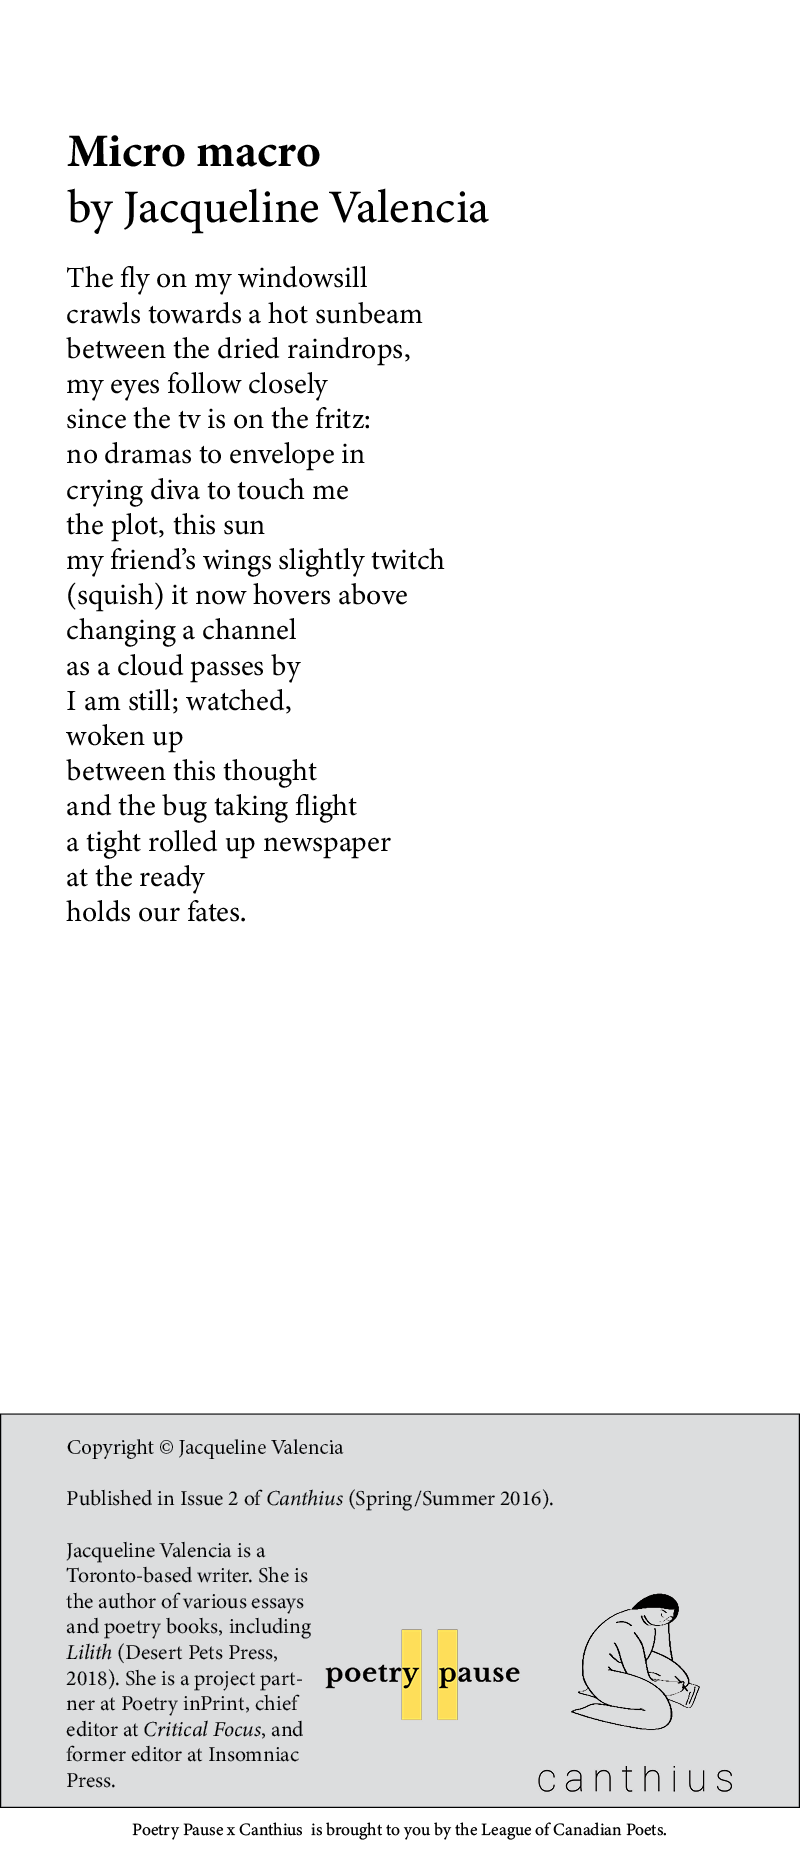 """Jacqueline Valencia – """"Micro macro"""" – published in Issue 2 of Canthius (Spring/Summer 2016). The fly on my windowsill crawls towards a hot sunbeam between the dried raindrops, my eyes follow closely since the tv is on the fritz: no dramas to envelope in crying diva to touch me the plot, this sun my friend's wings slightly twitch (squish) it now hovers above changing a channel as a cloud passes by I am still; watched, woken up between this thought and the bug taking flight a tight rolled up newspaper at the ready holds our fates. Bio: Jacqueline Valencia is a Toronto-based writer. She is the author of various essays and poetry books, including Lilith (Desert Pets Press, 2018). She is a project partner at Poetry inPrint, chief editor at Critical Focus, and former editor at Insomniac Press."""